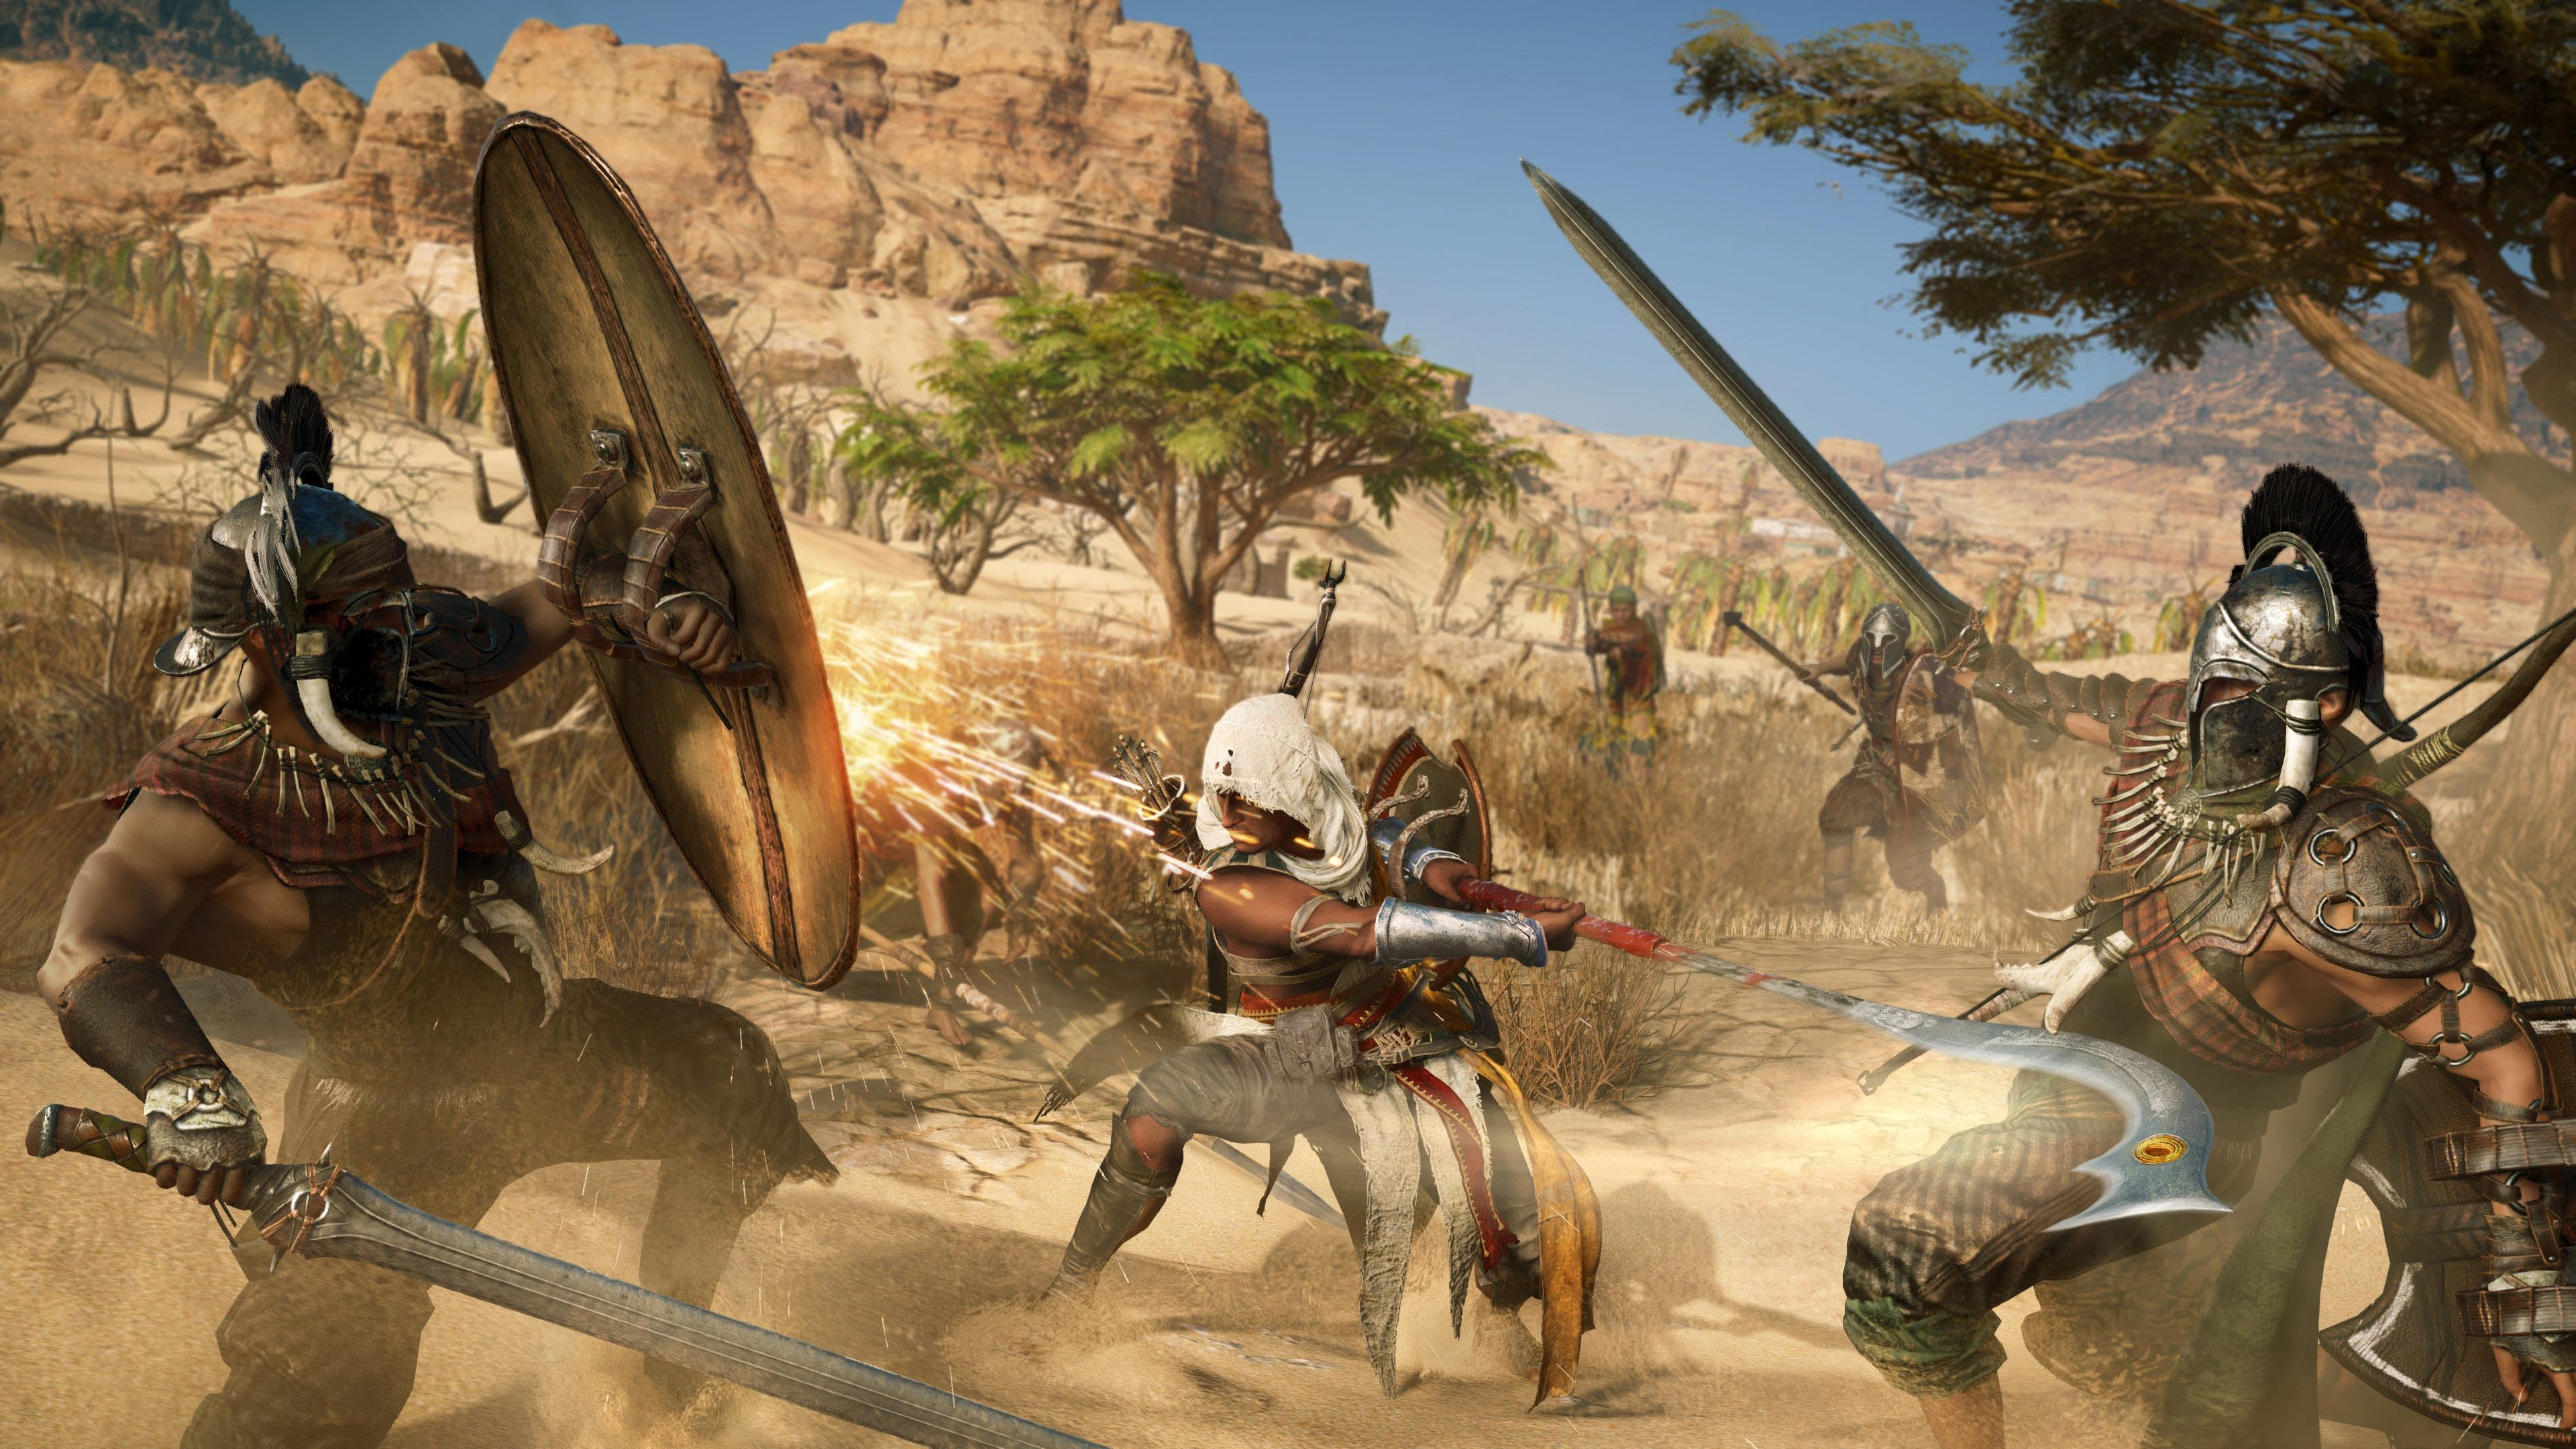 Assassin's Creed Origins – Ancient Egypt Comes to Xbox One, PS4, and PC October 27th | DeviceDaily.com